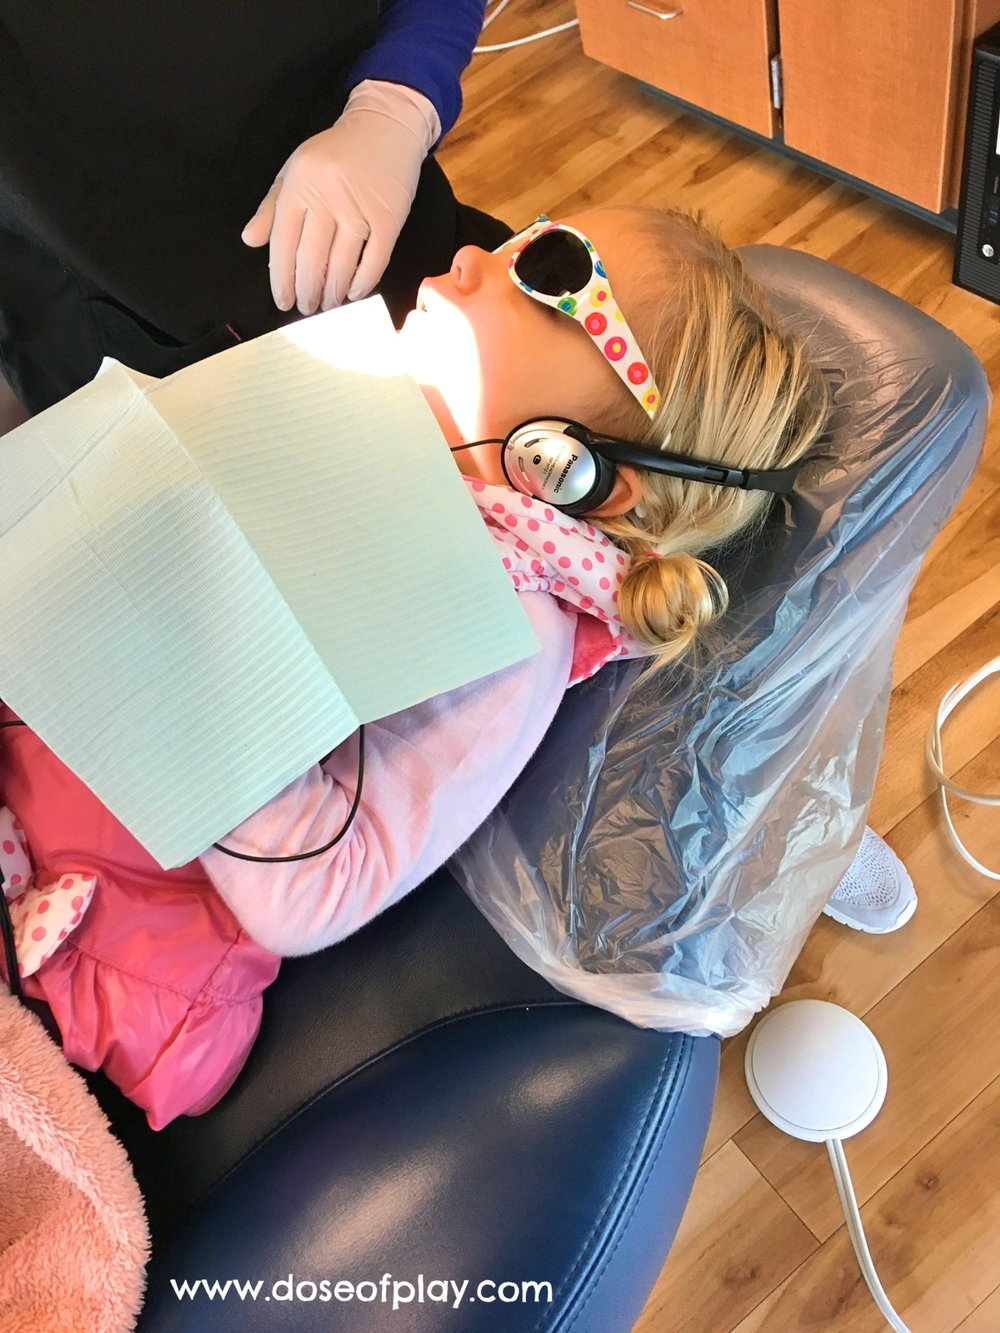 Two year old Quinn coped very well with her thorough exam and cleaning with the help of sunglasses and headphones to enjoy a movie on the ceiling! This was her first successful medical experience without a comfort hold - don't worry if your child prefers to use a comfort hold at this age.